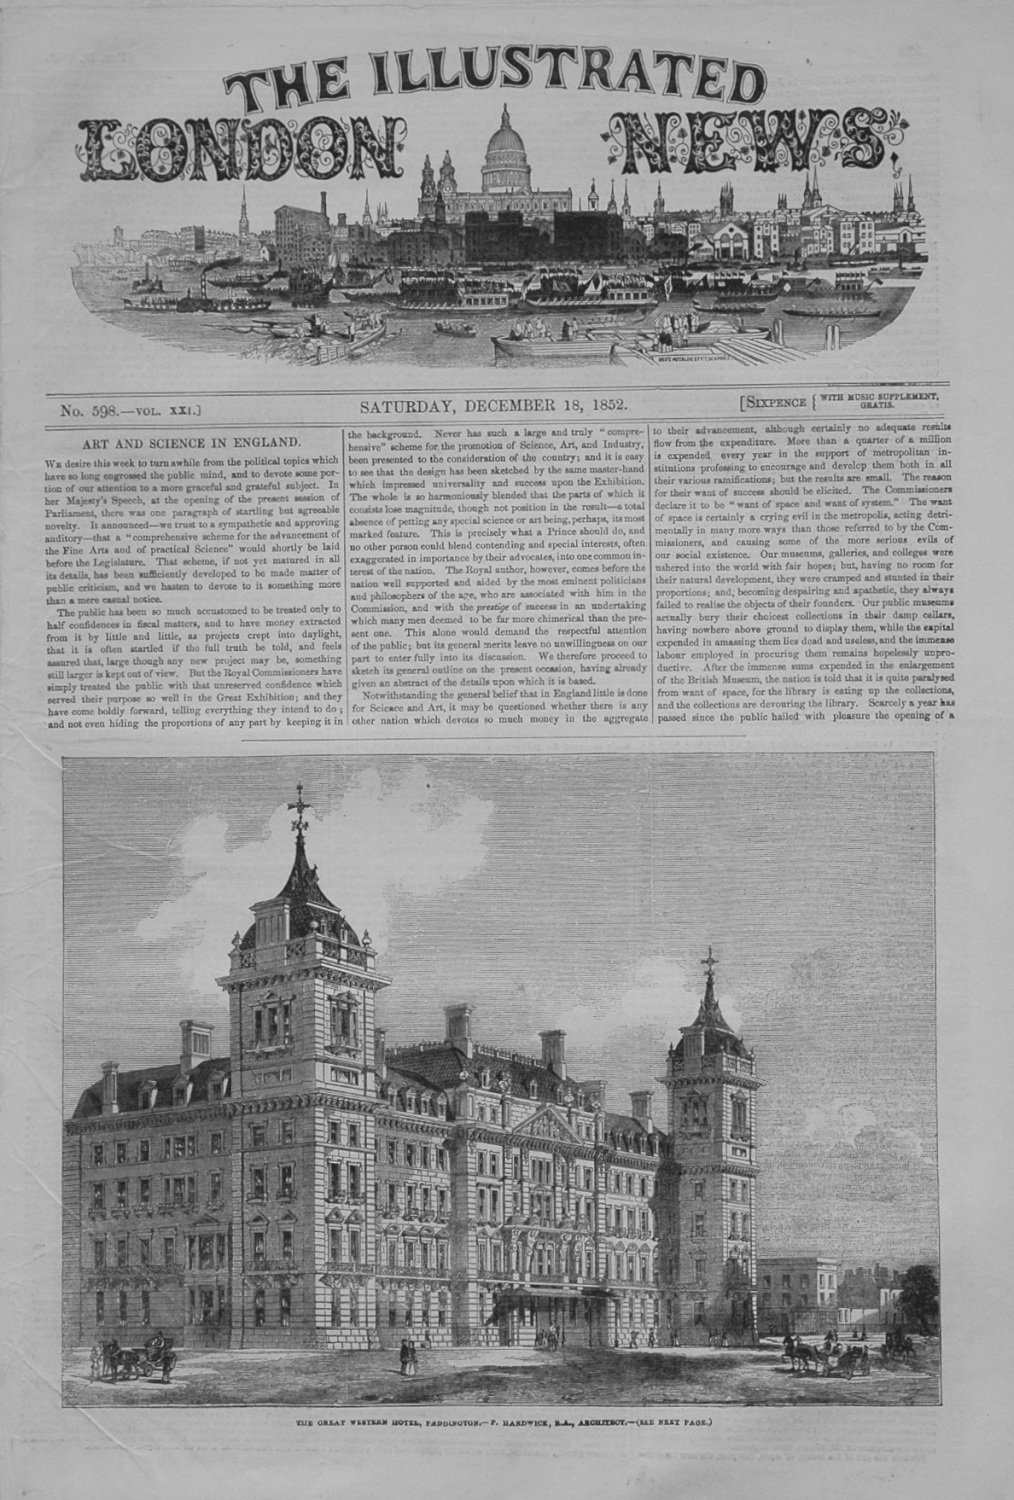 Illustrated London News, December 18th 1852.